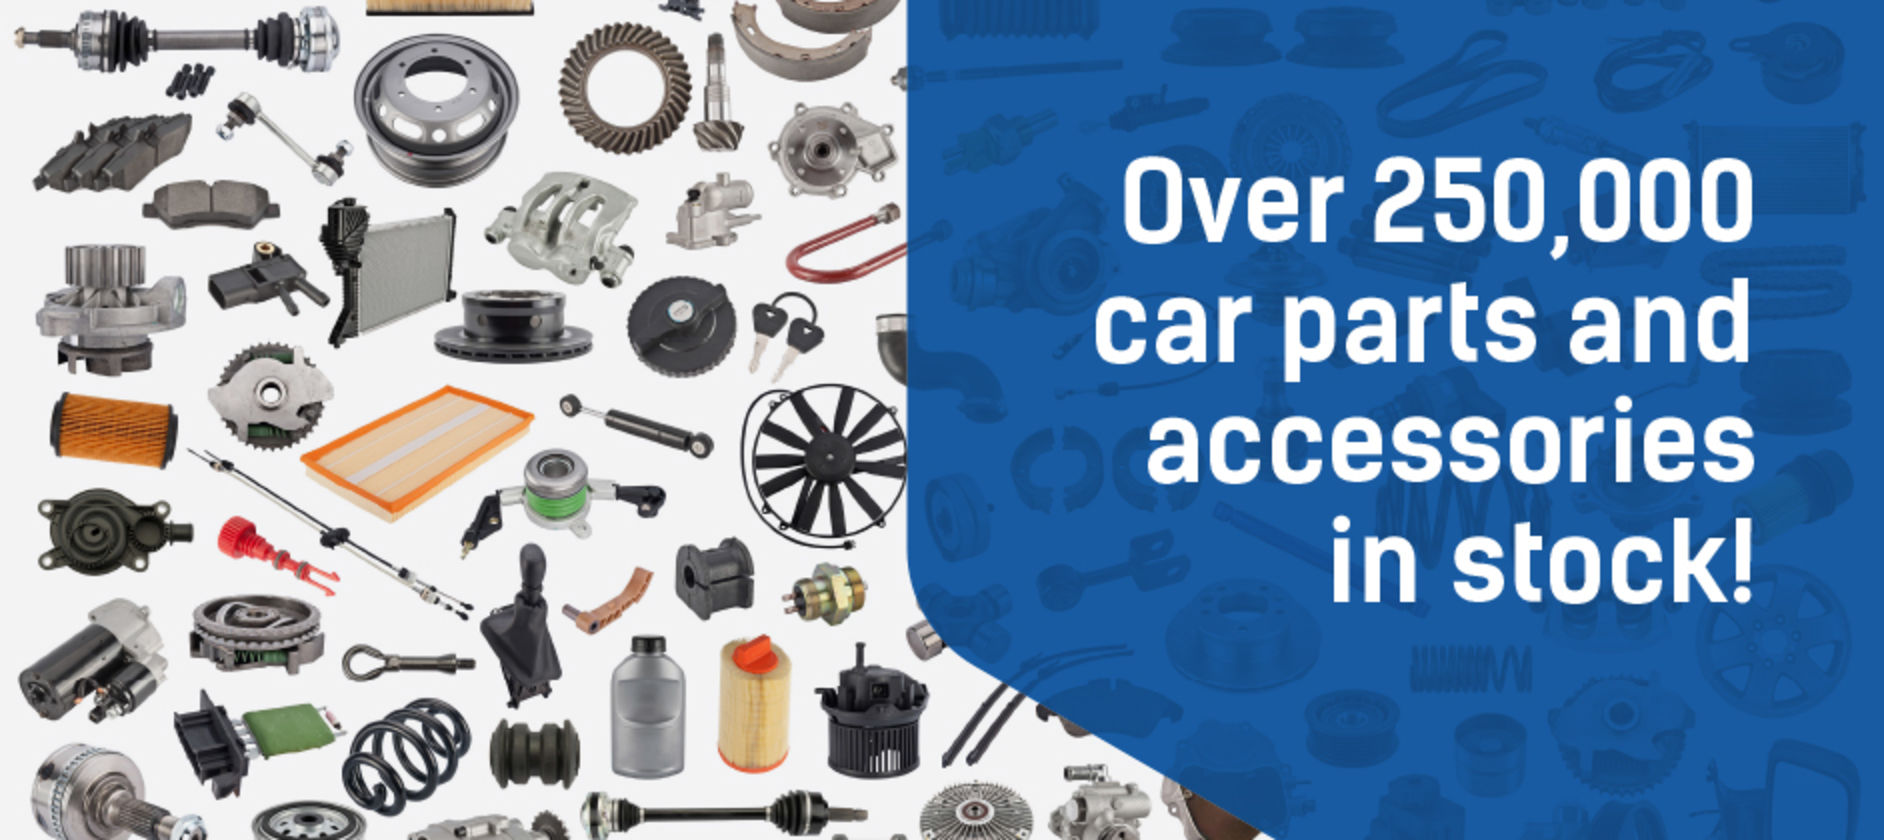 MotorNuts has more than 250,000 car Parts and spares online